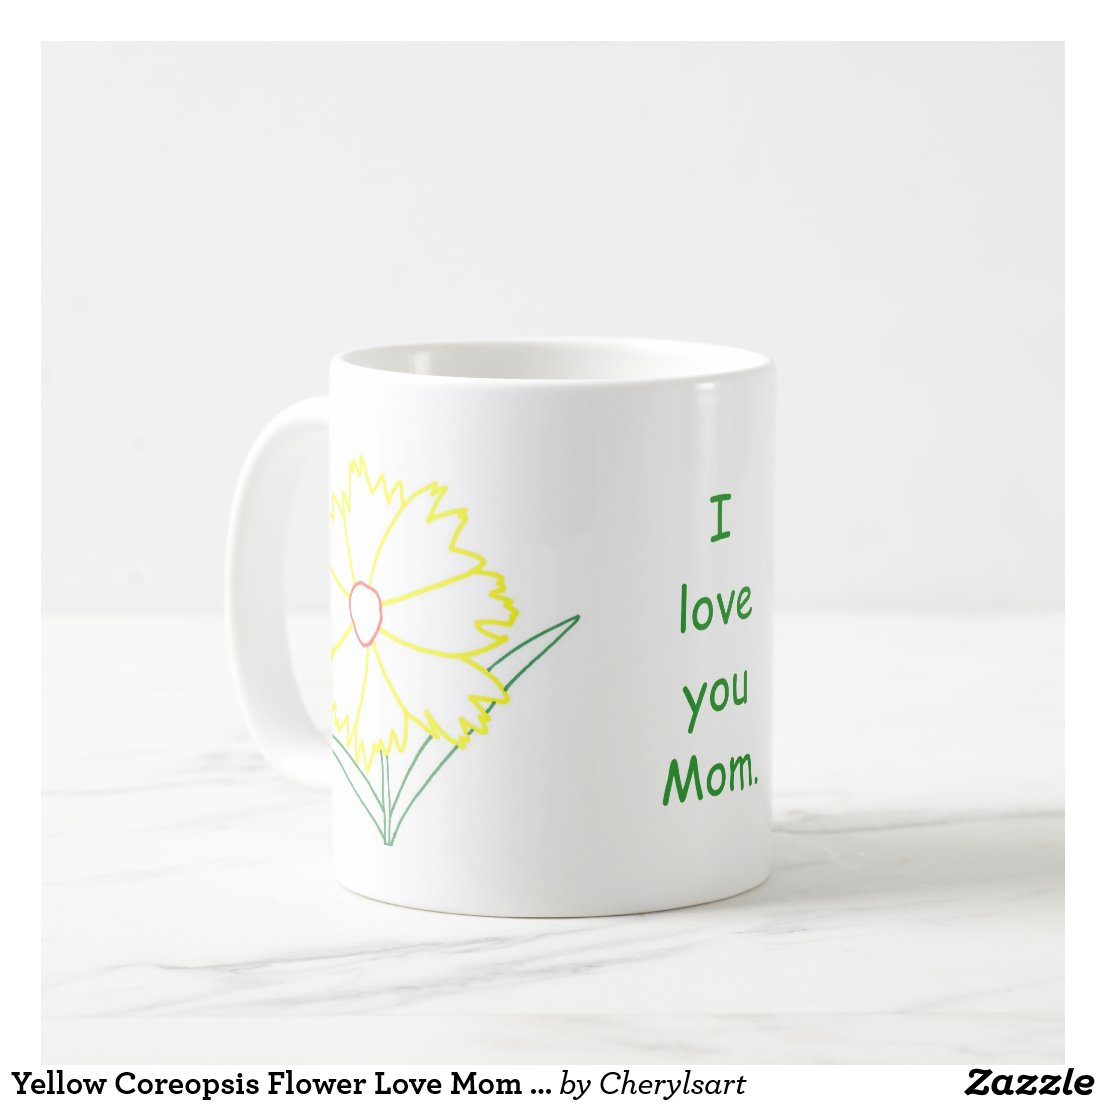 Yellow Coreopsis Flower Love Mom Mugs